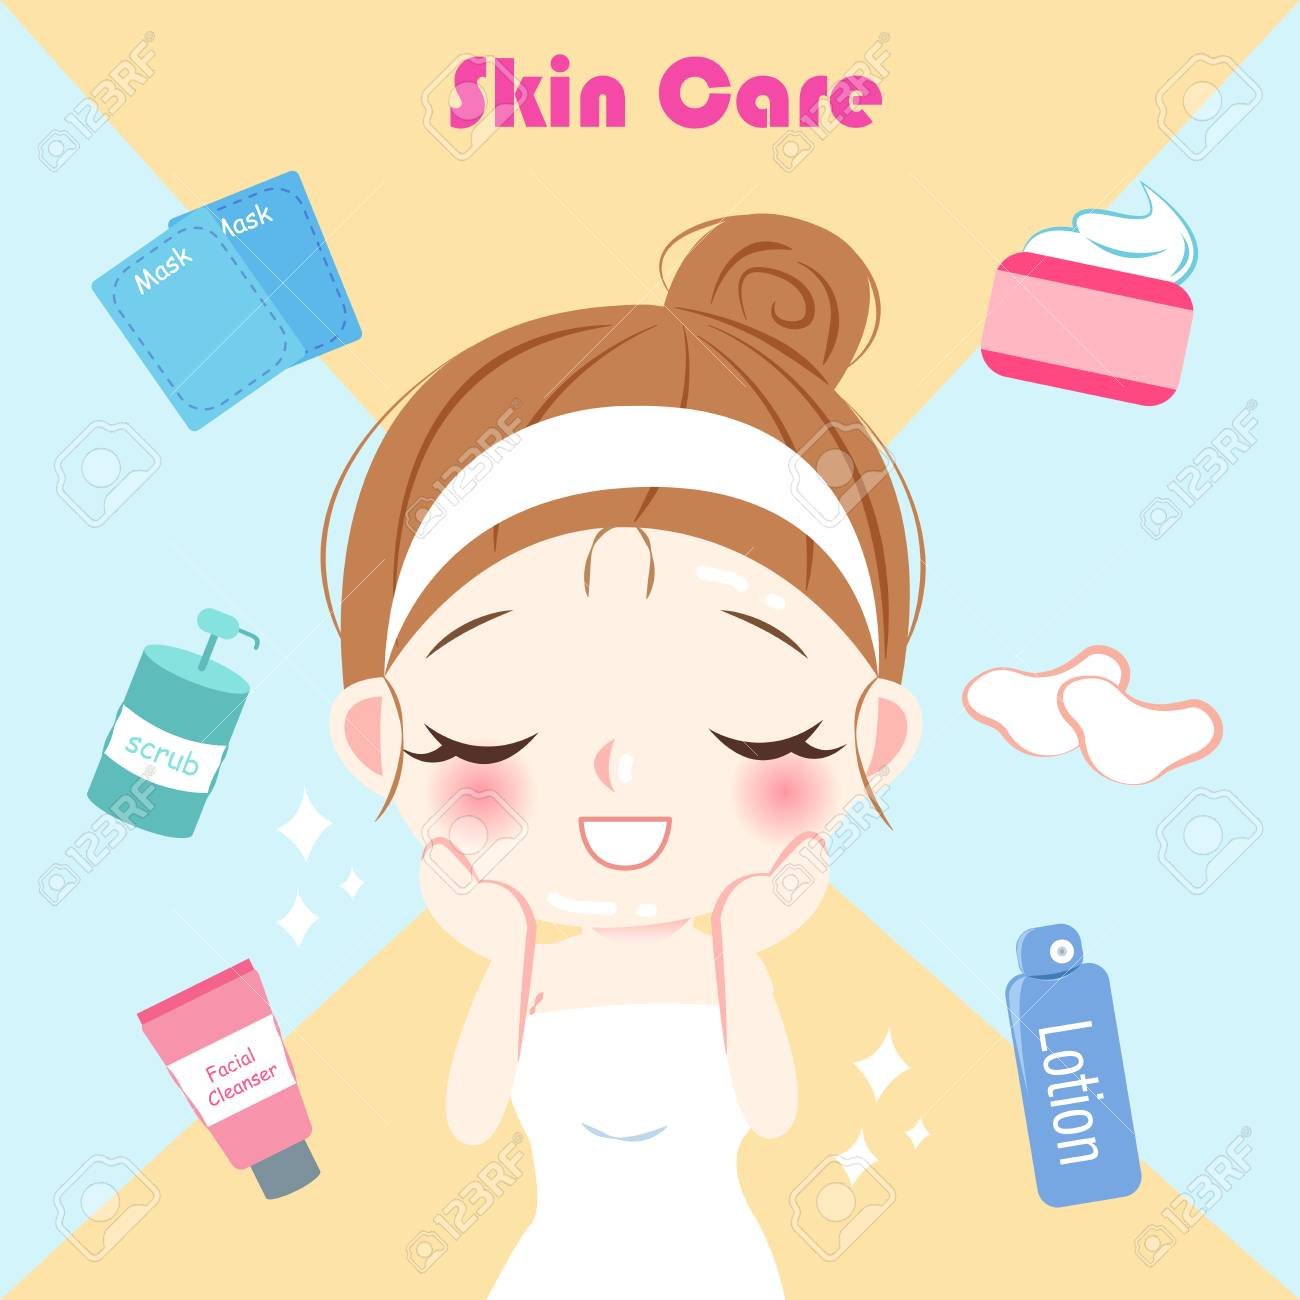 Skin Care Cartoon Pics Doctor Heck